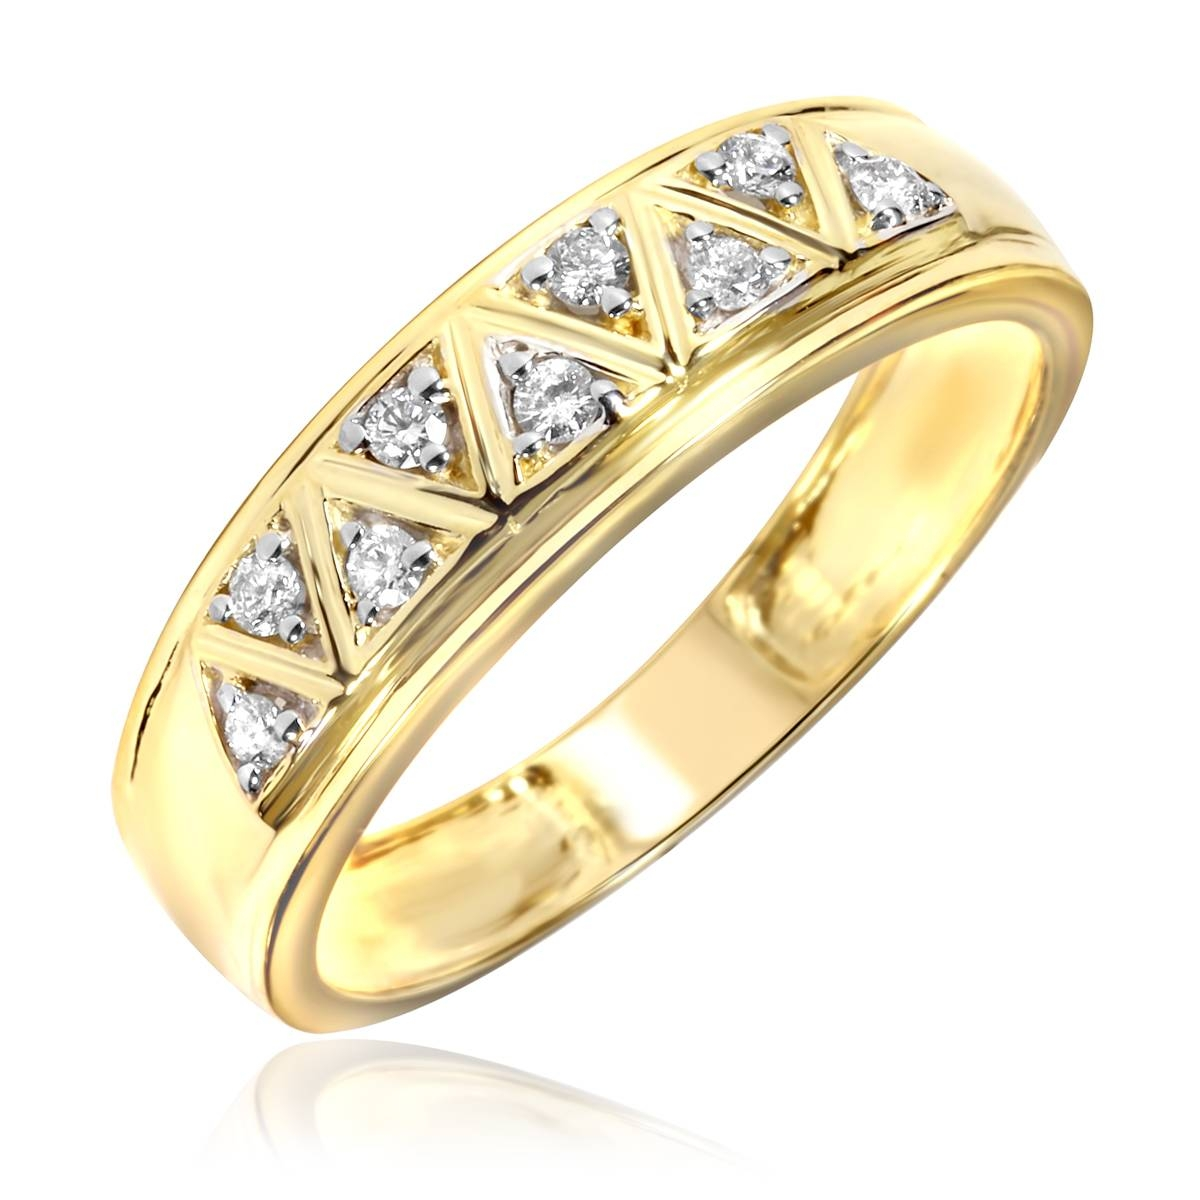 1/5 Carat T.w. Diamond Men's Wedding Ring 10k Yellow Gold With Mens Gold Diamond Wedding Bands (Gallery 6 of 15)